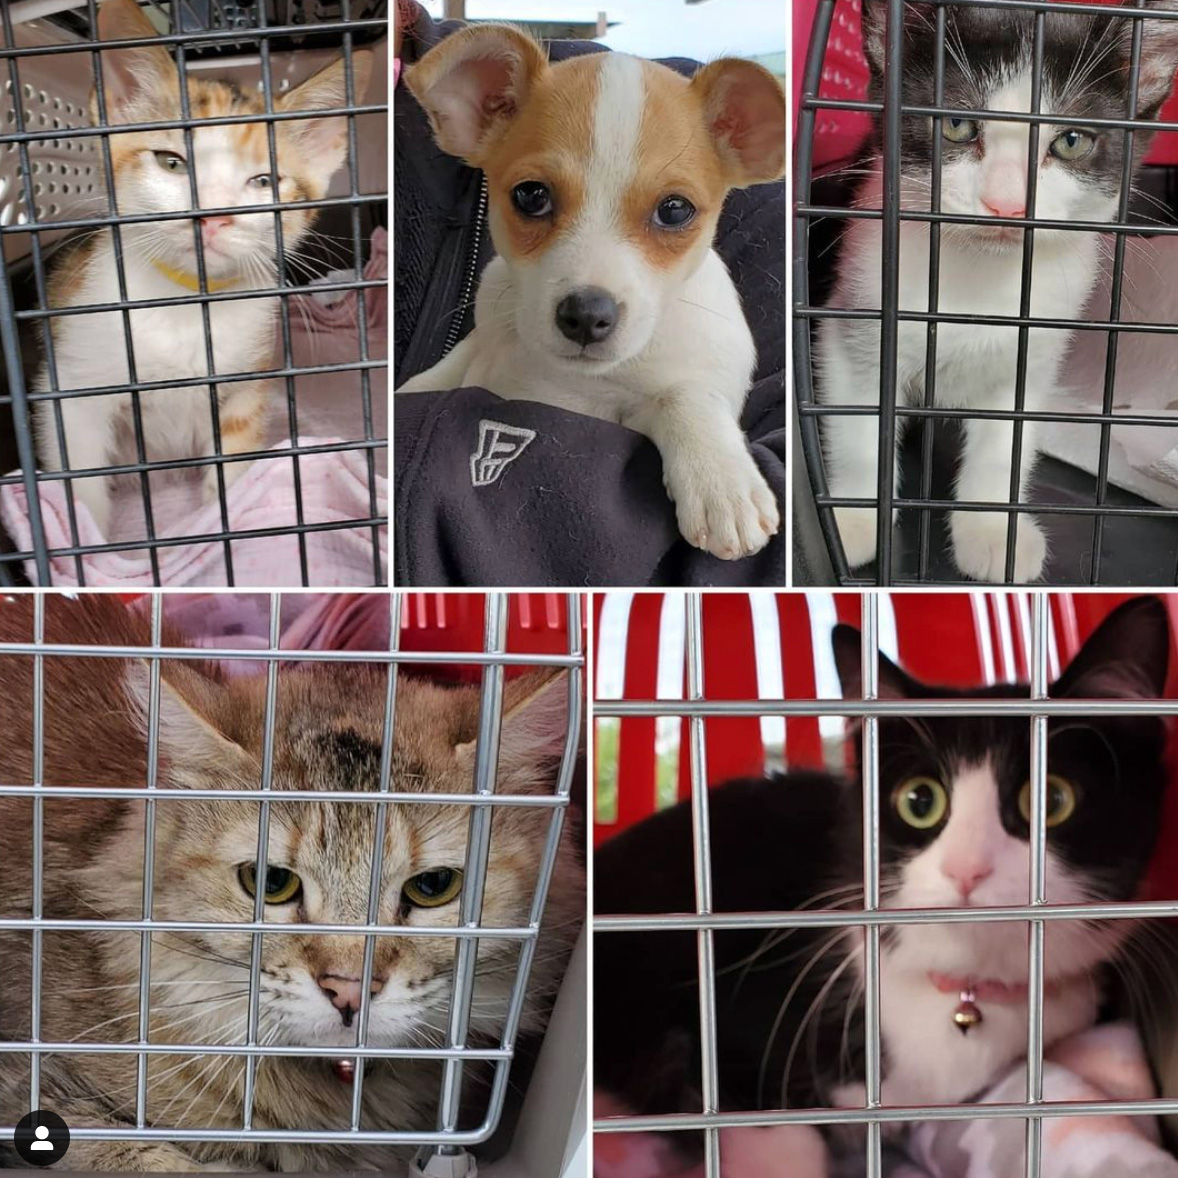 Spay/Neuter Day for #1447 to #1451 5-26-2021